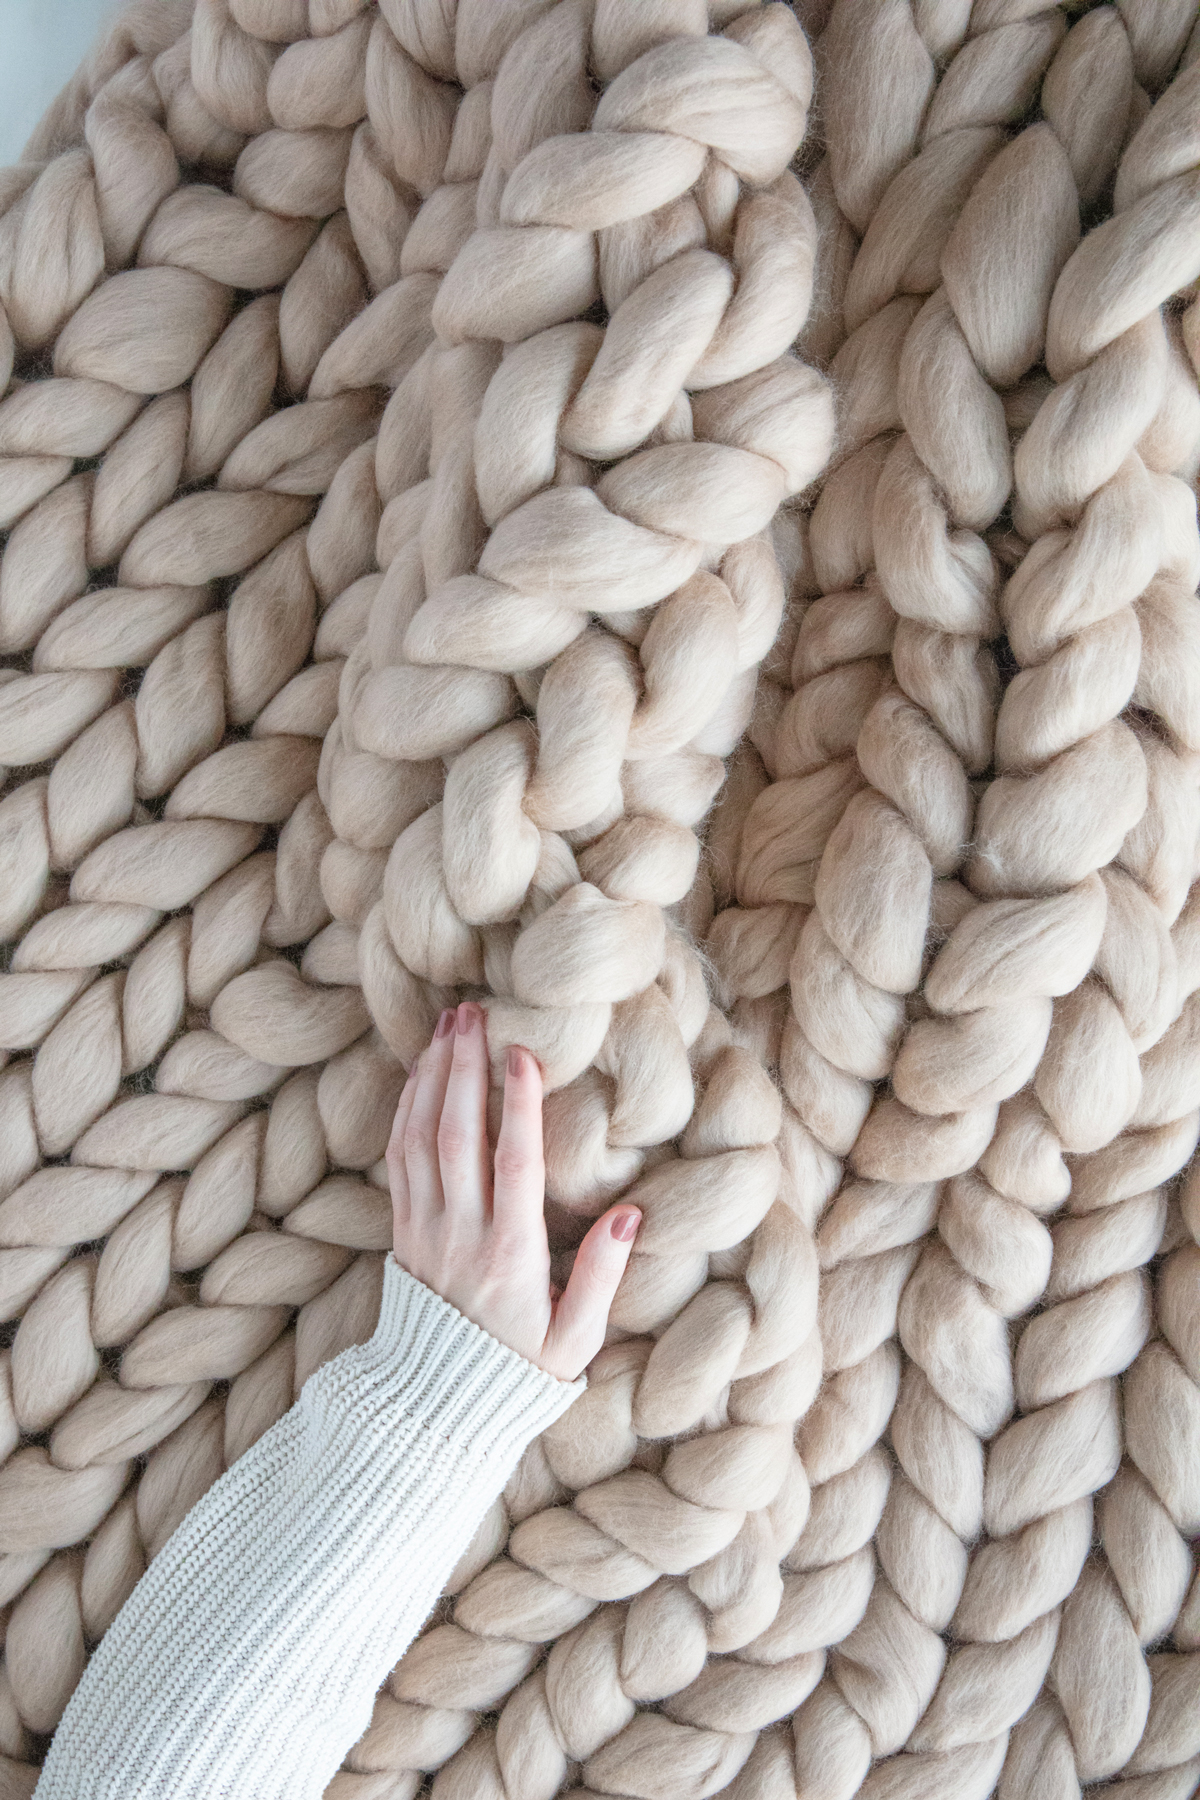 hand feeling rolled up arm knit blanket